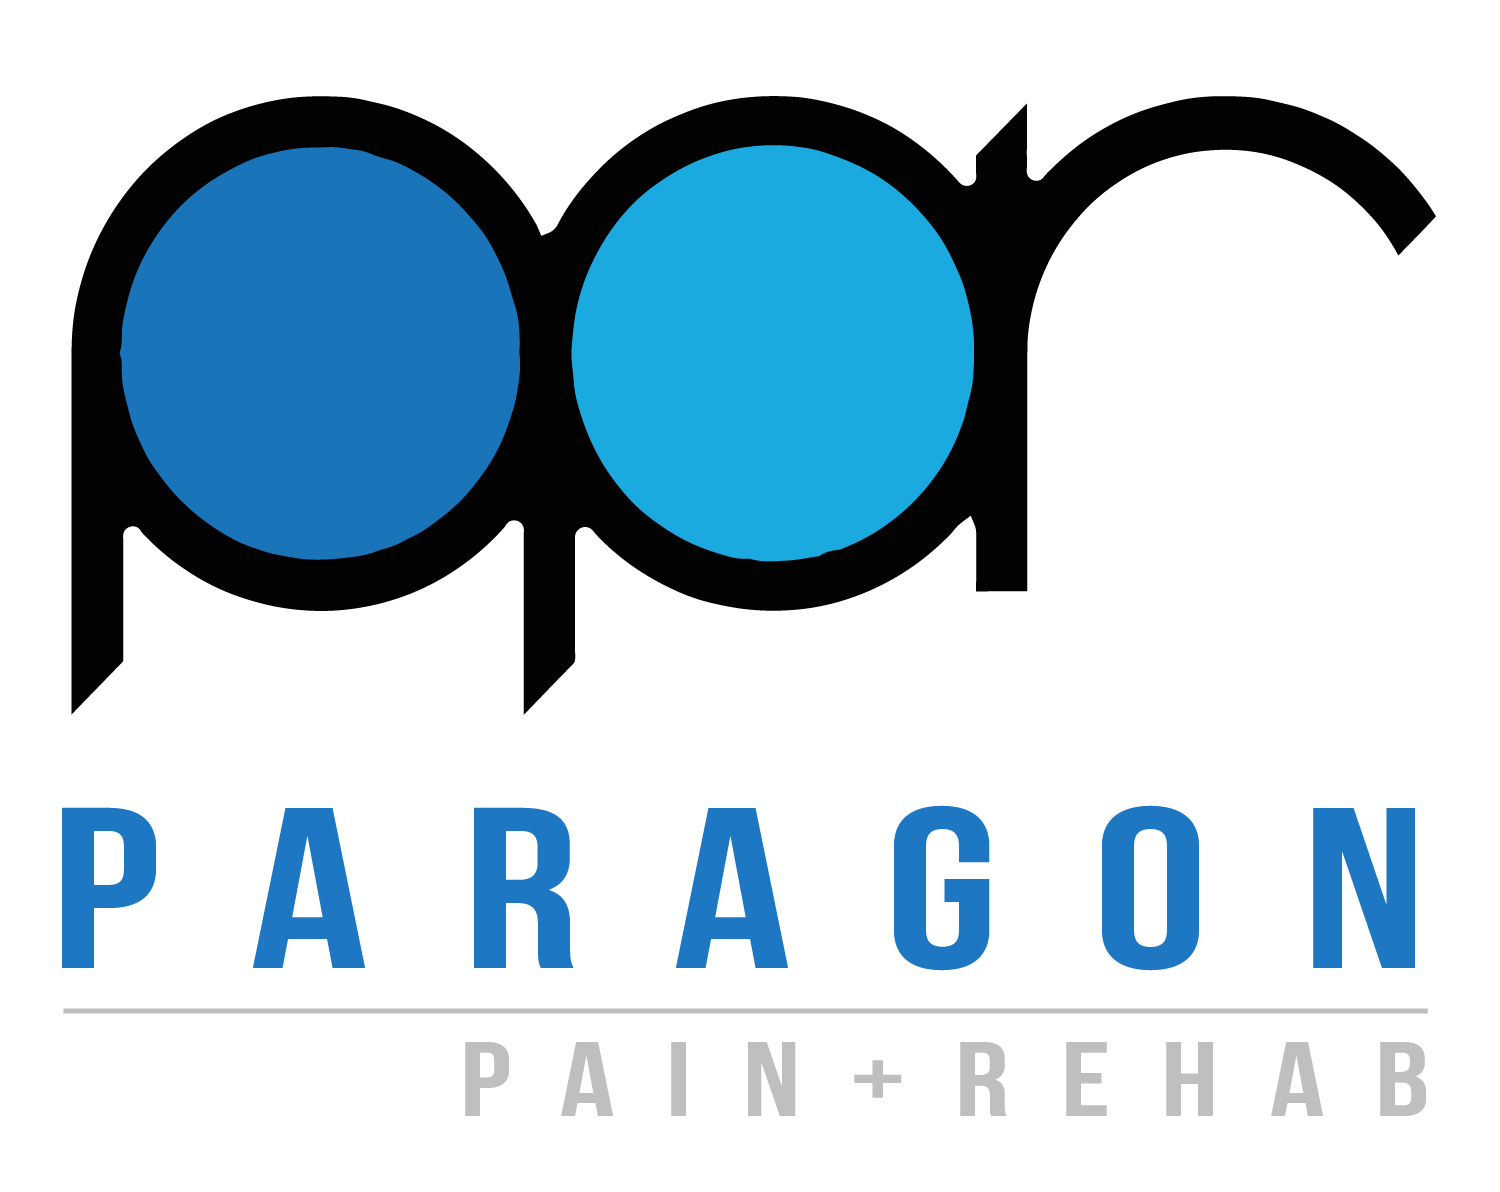 Paragon Pain + Rehabilitation